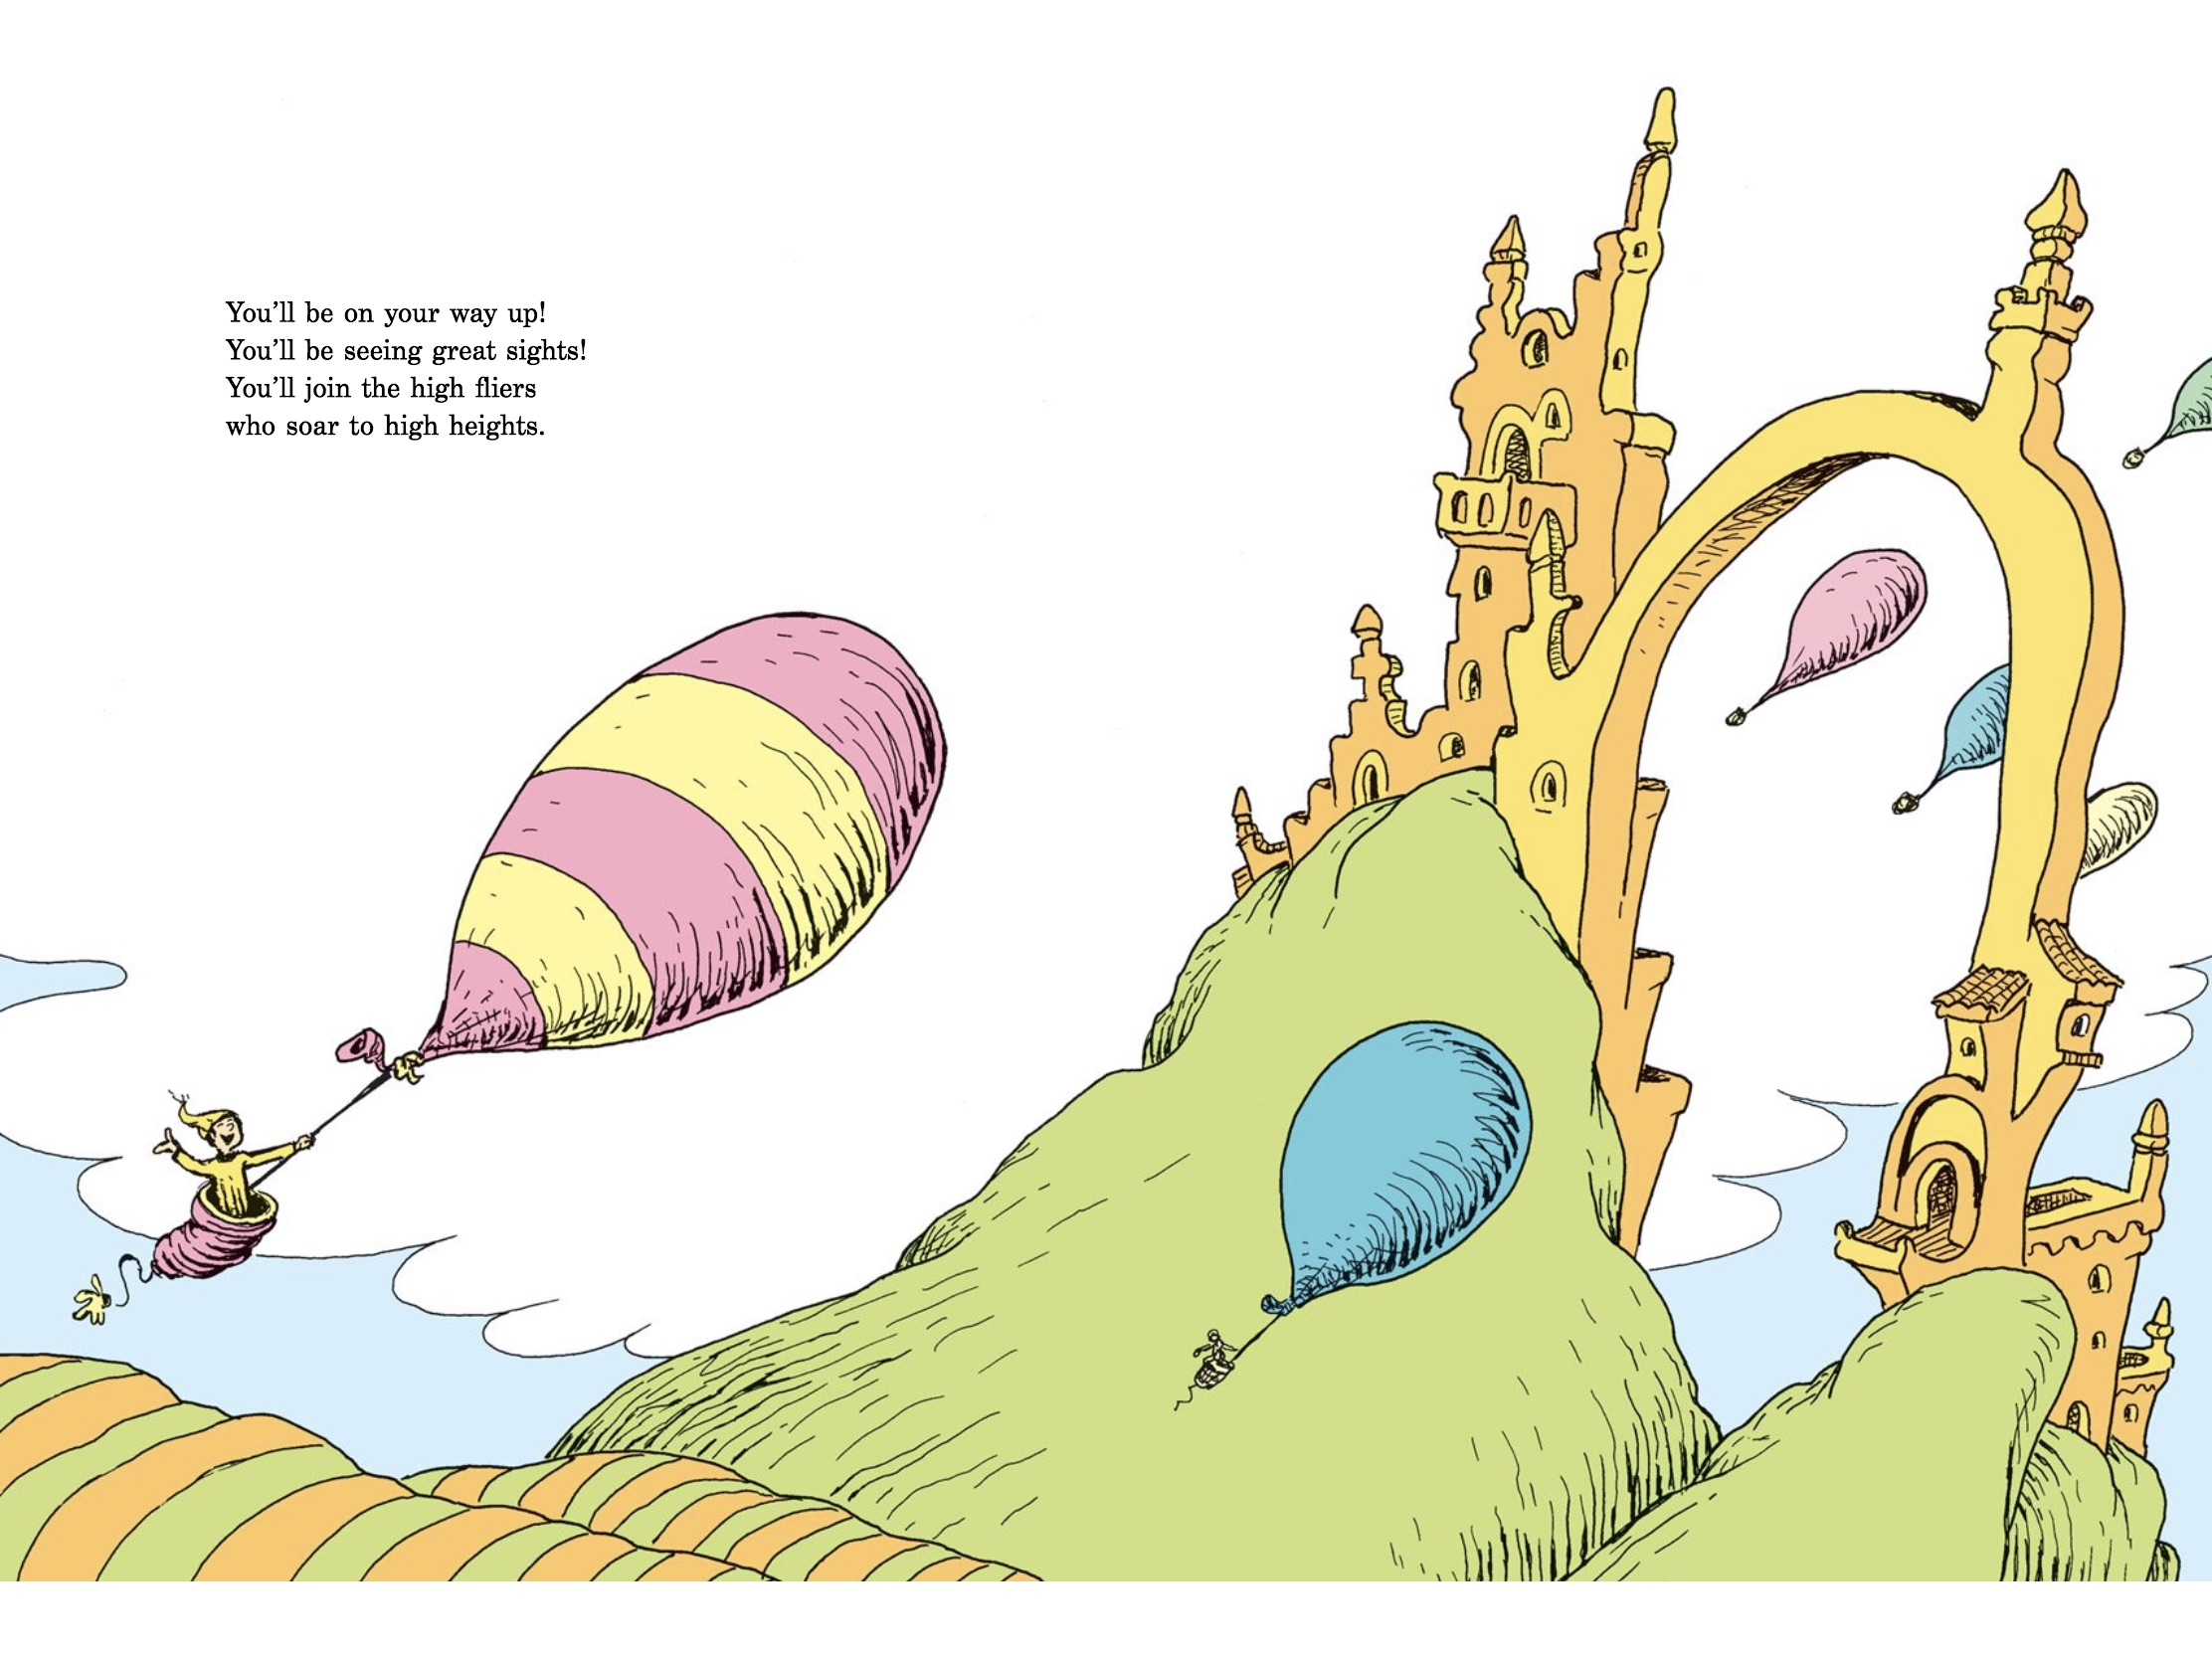 dr seuss - oh the places youll go7.jpg